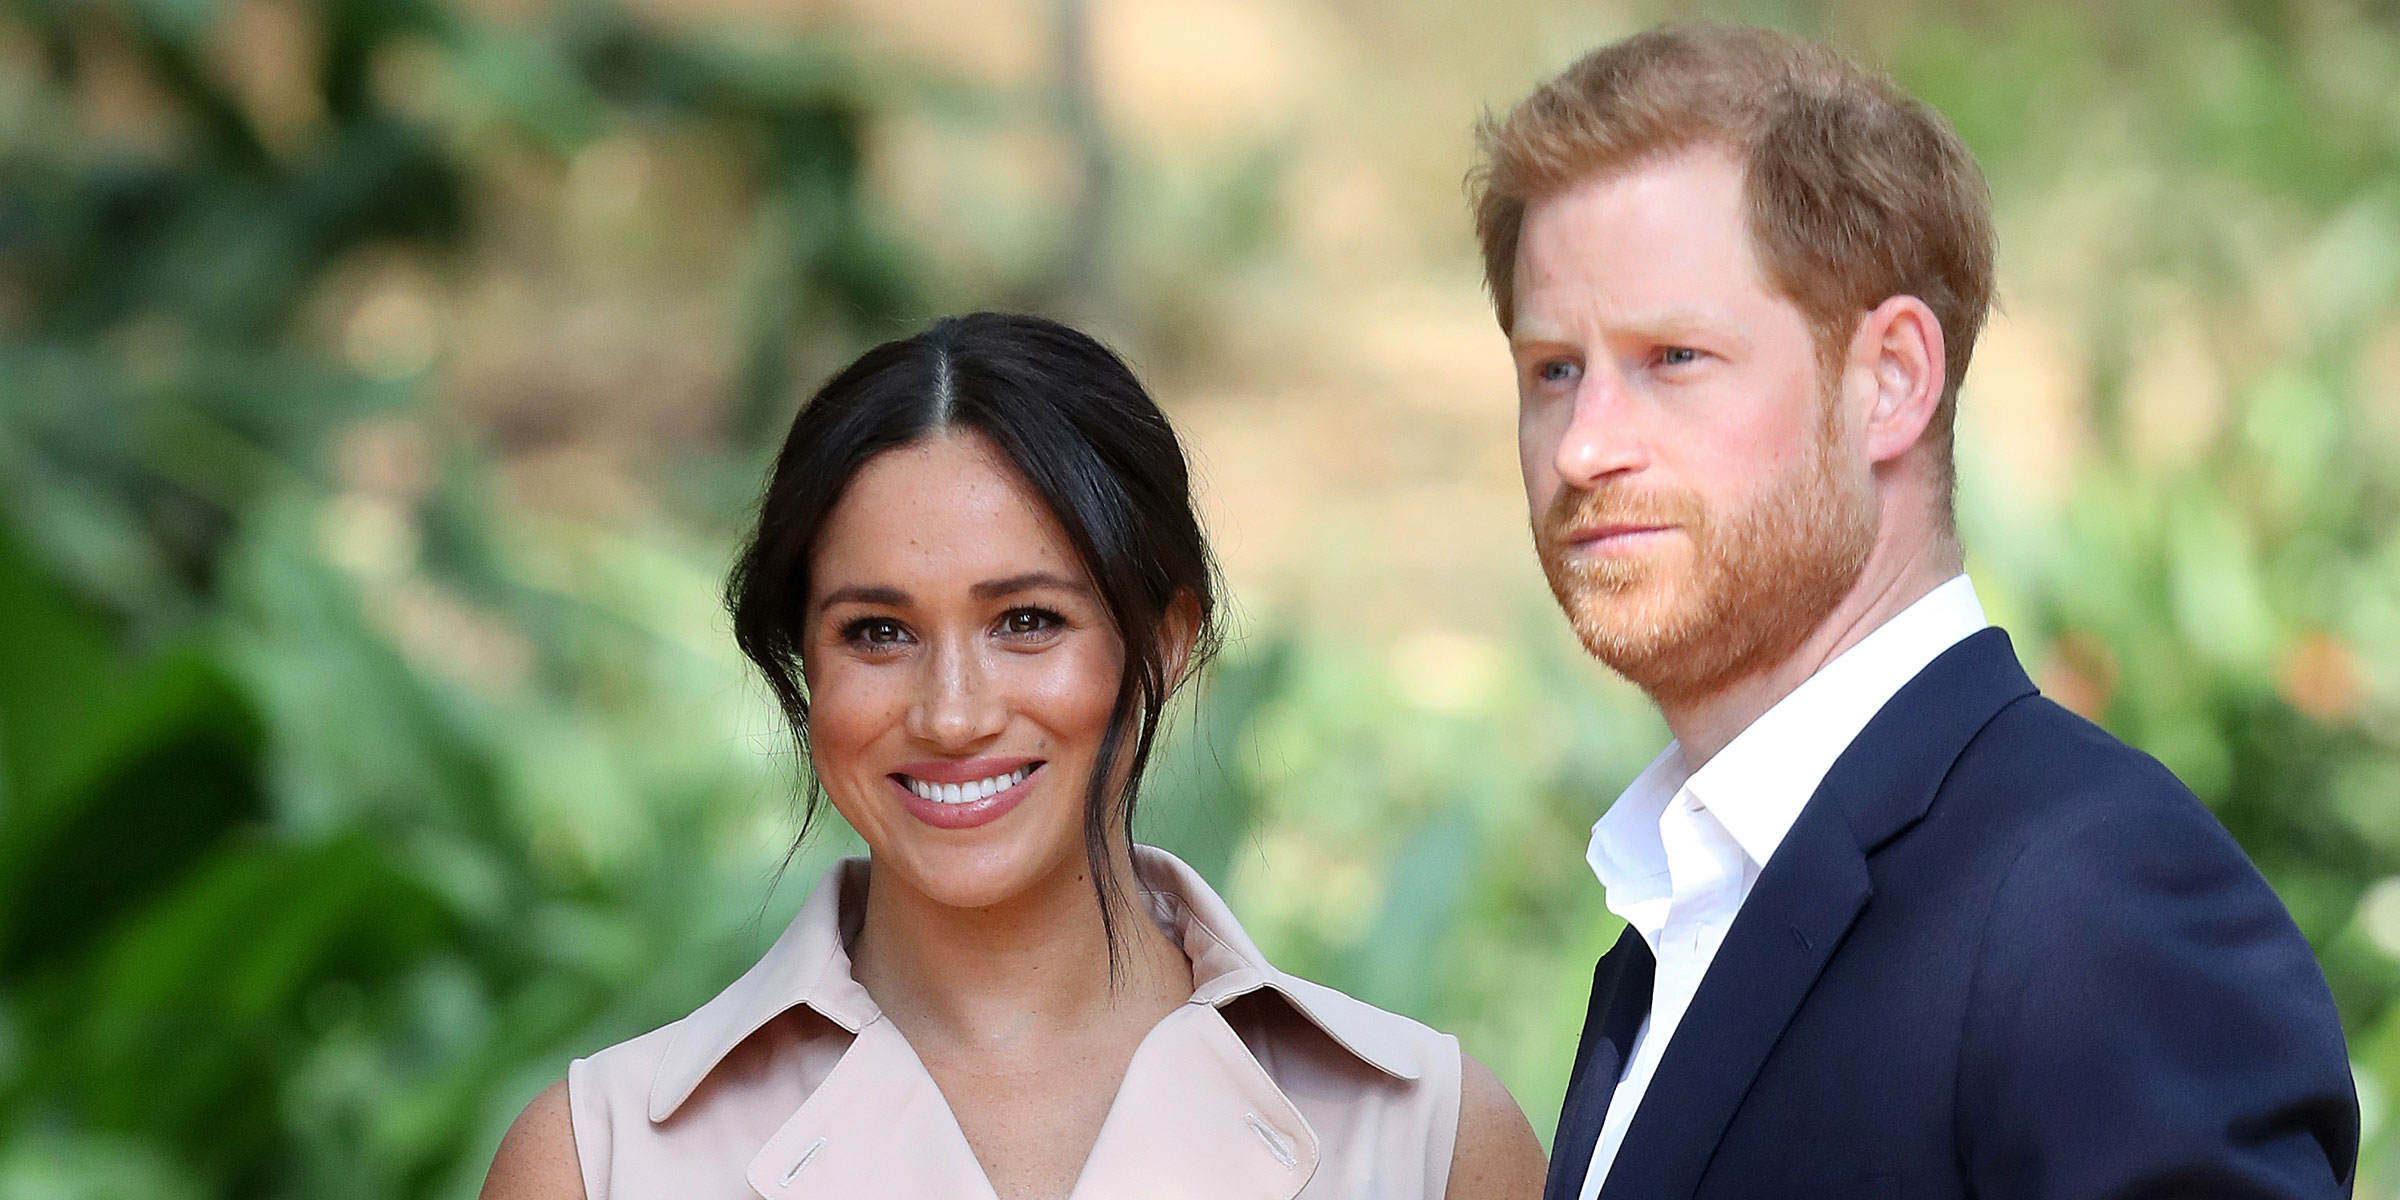 prince harry and meghan markle discuss voting in 2020 election time https time com 5891136 prince harry meghan markle vote 2020 election